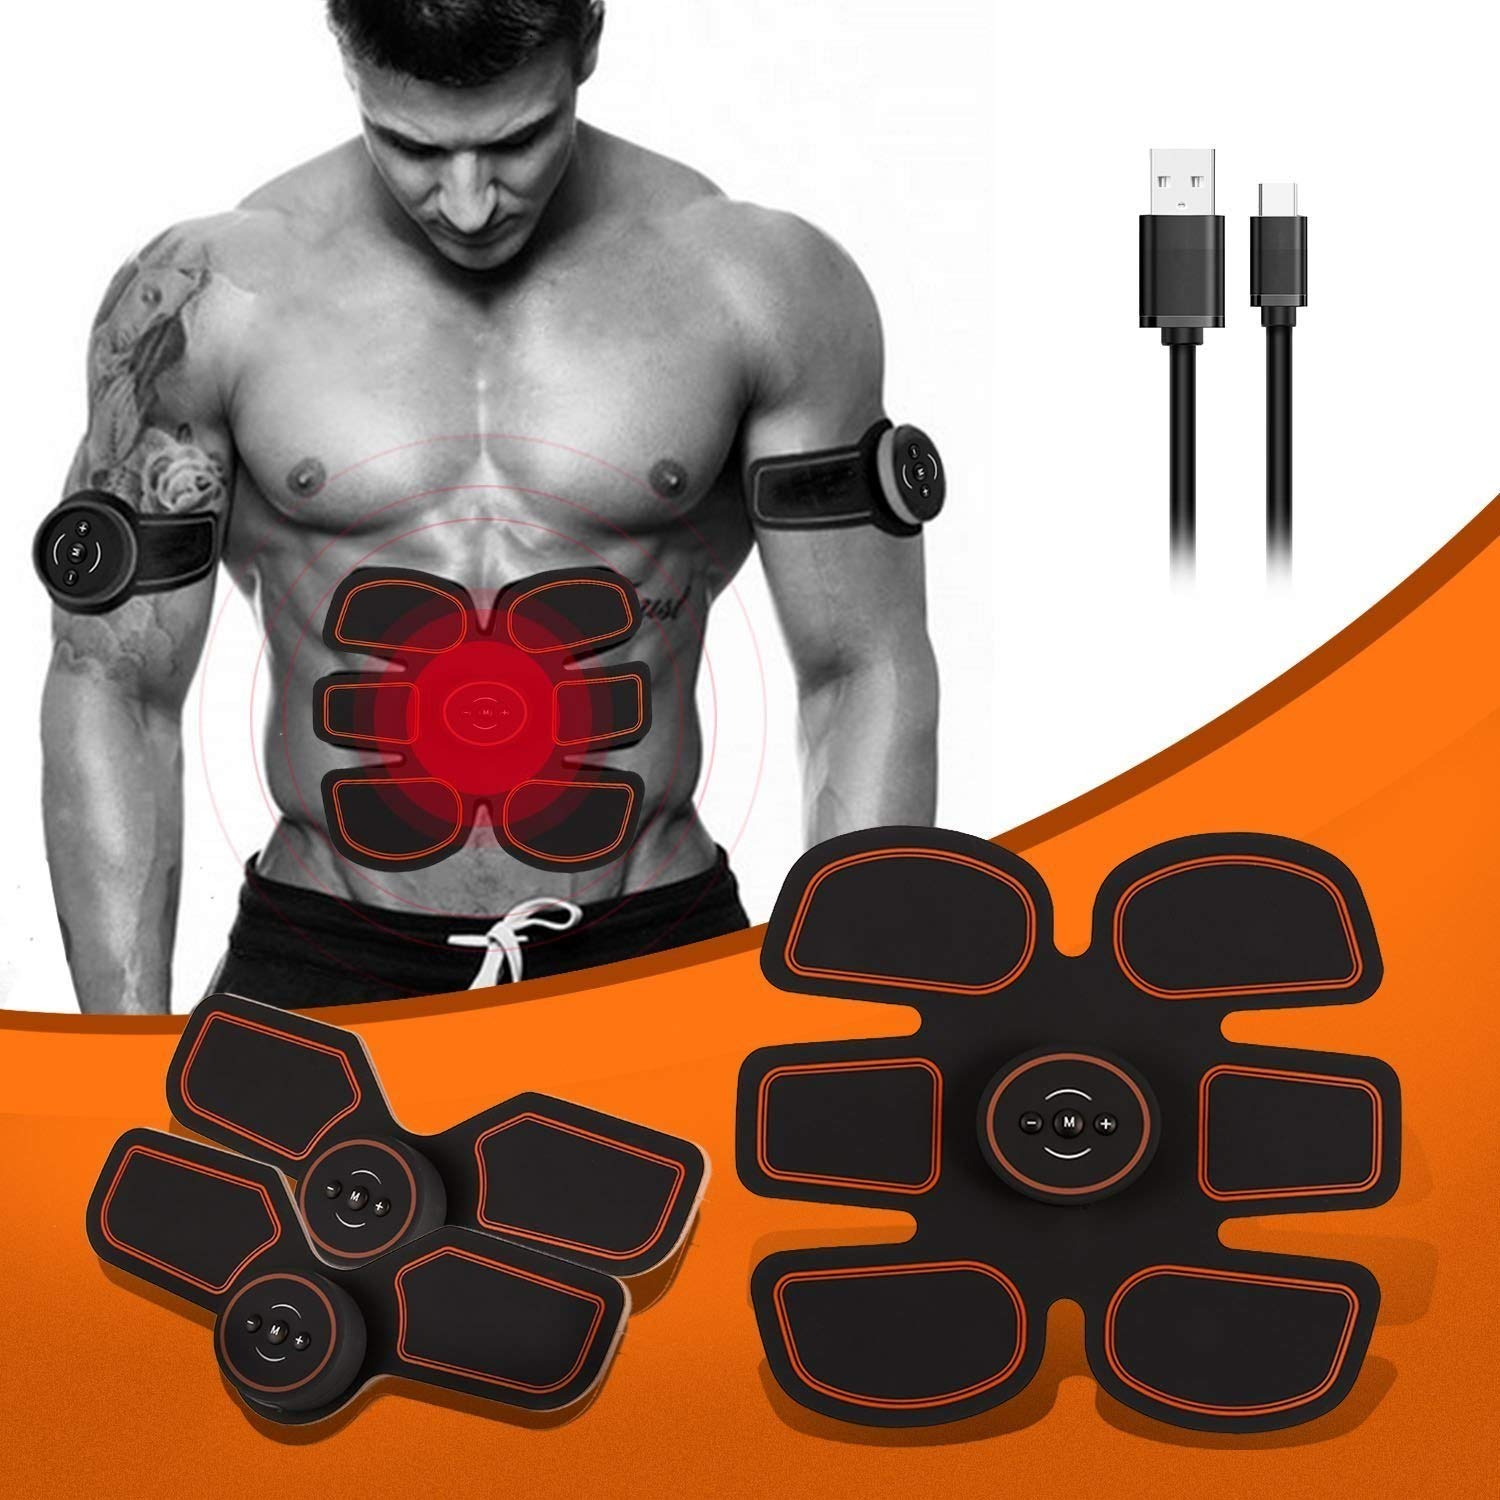 Sporting Goods Abdominal Exercisers The Flex Belt Abdominal Muscle Toner Fast Shipping Brand New